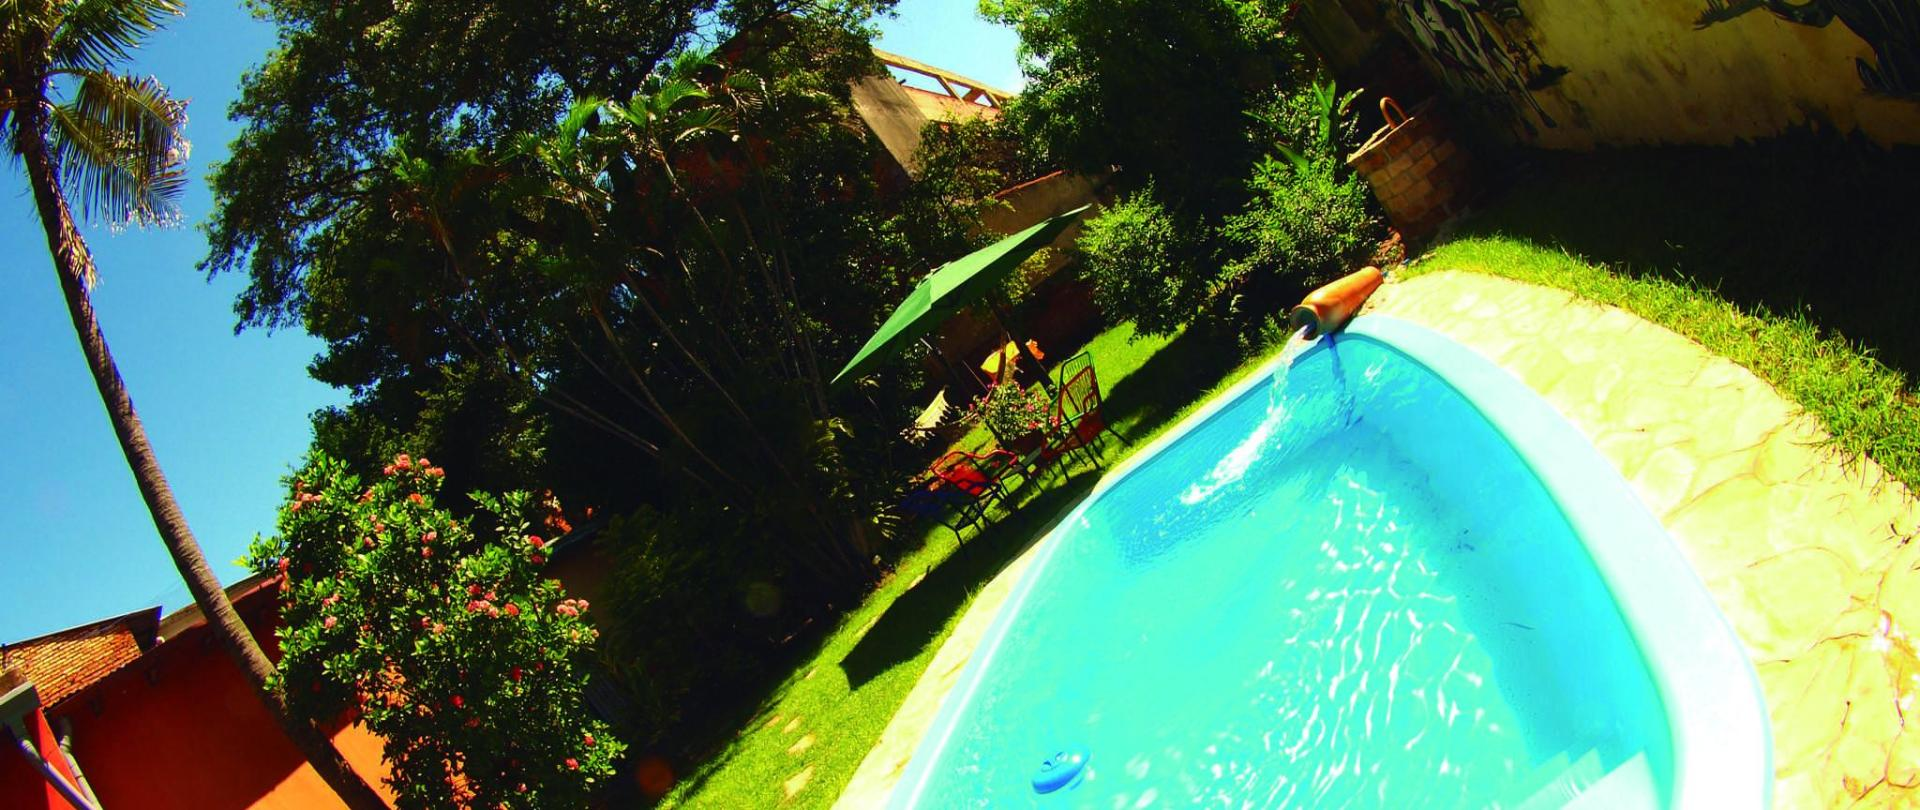 swimming pool garden hostel asuncion nomada.JPG